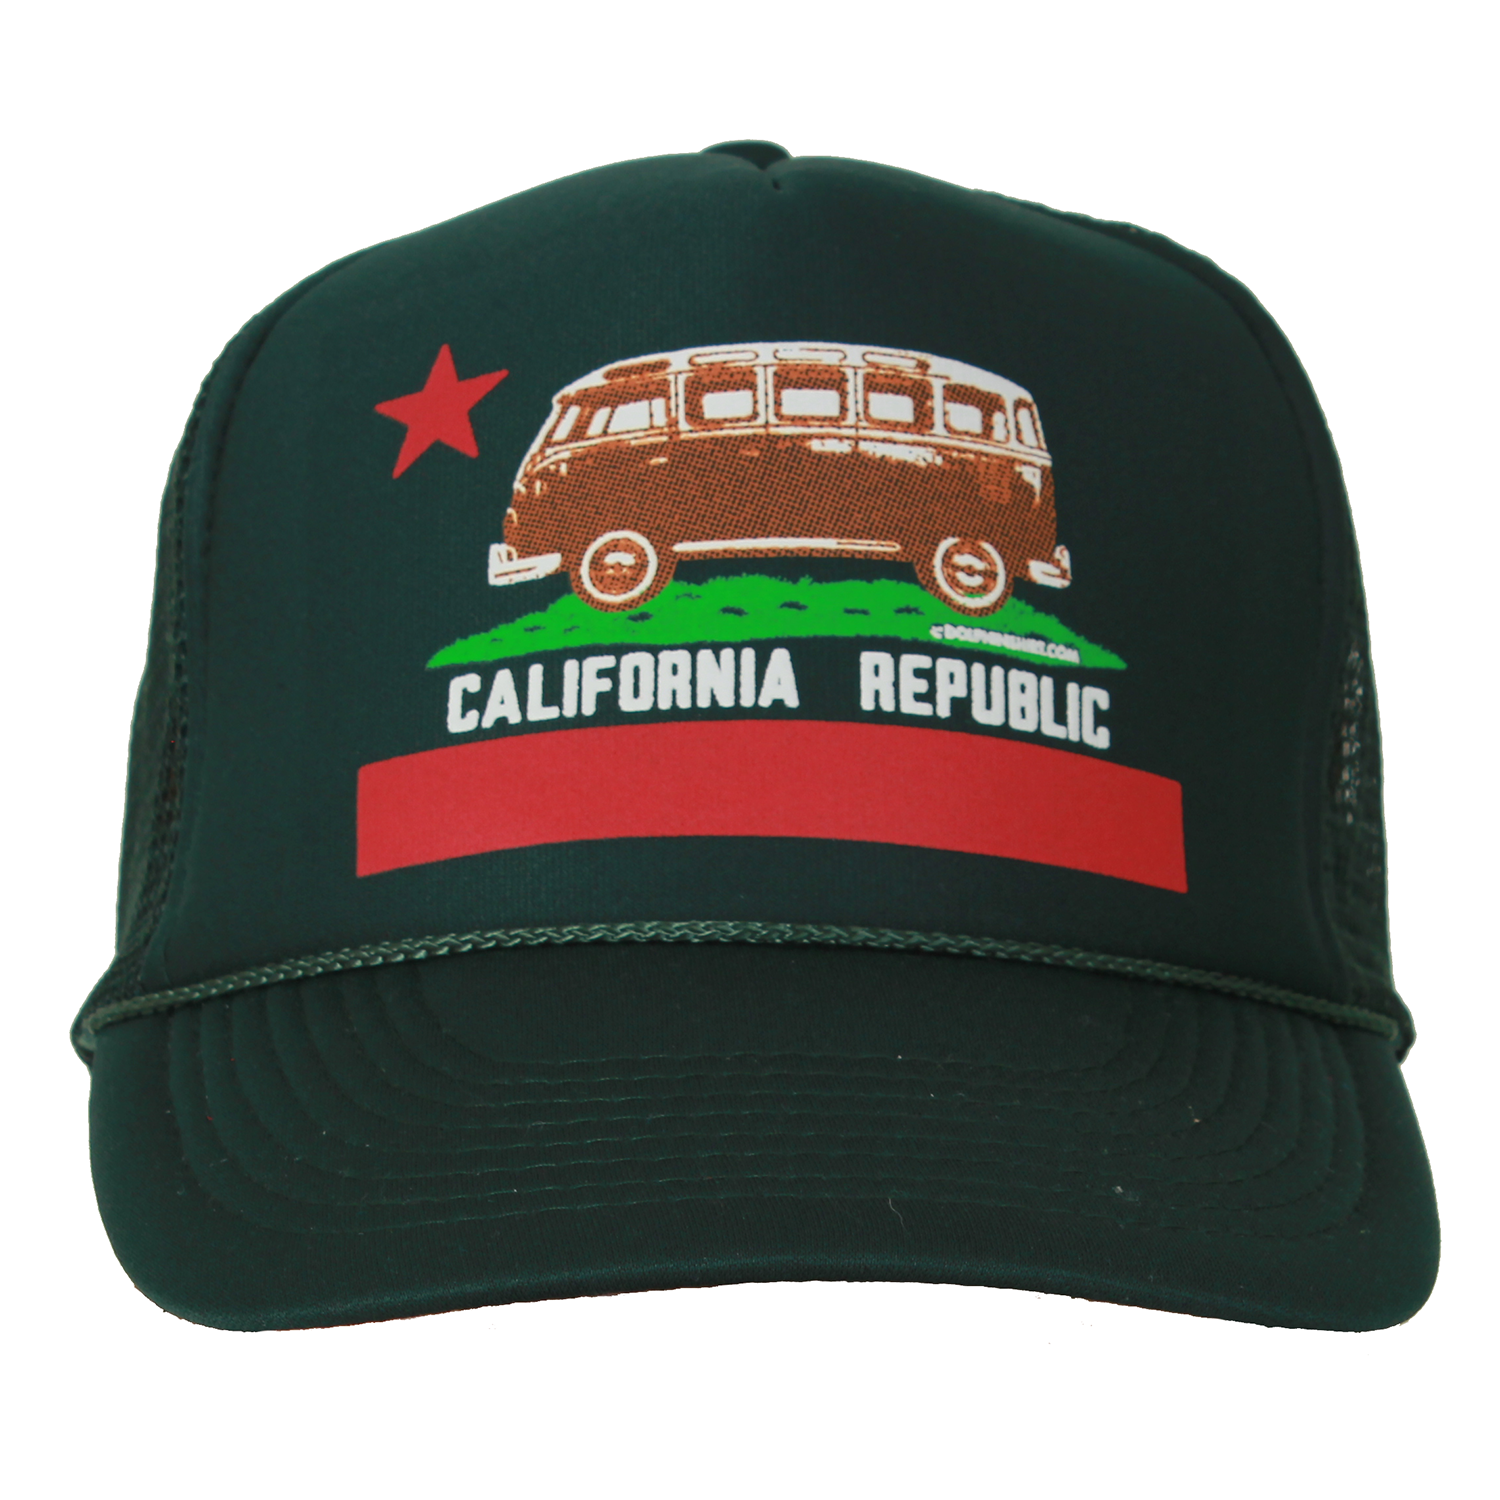 62687037752 California Republic Vintage Van Snapback Mesh Truckers Cap - Forest Green California  Flag